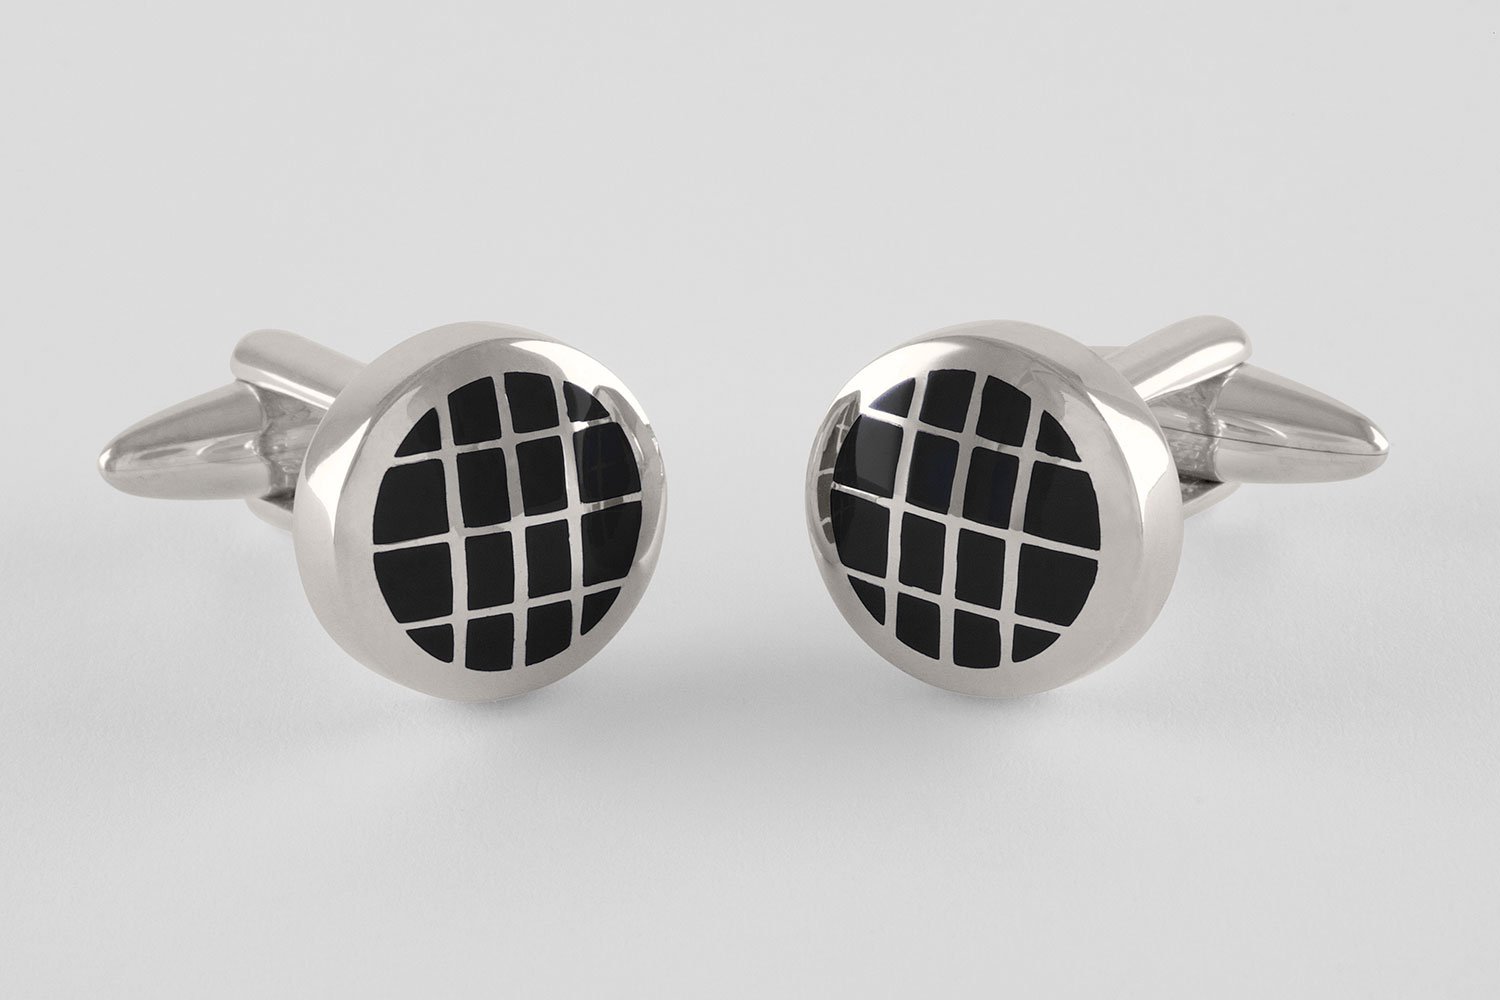 plaid cufflinks